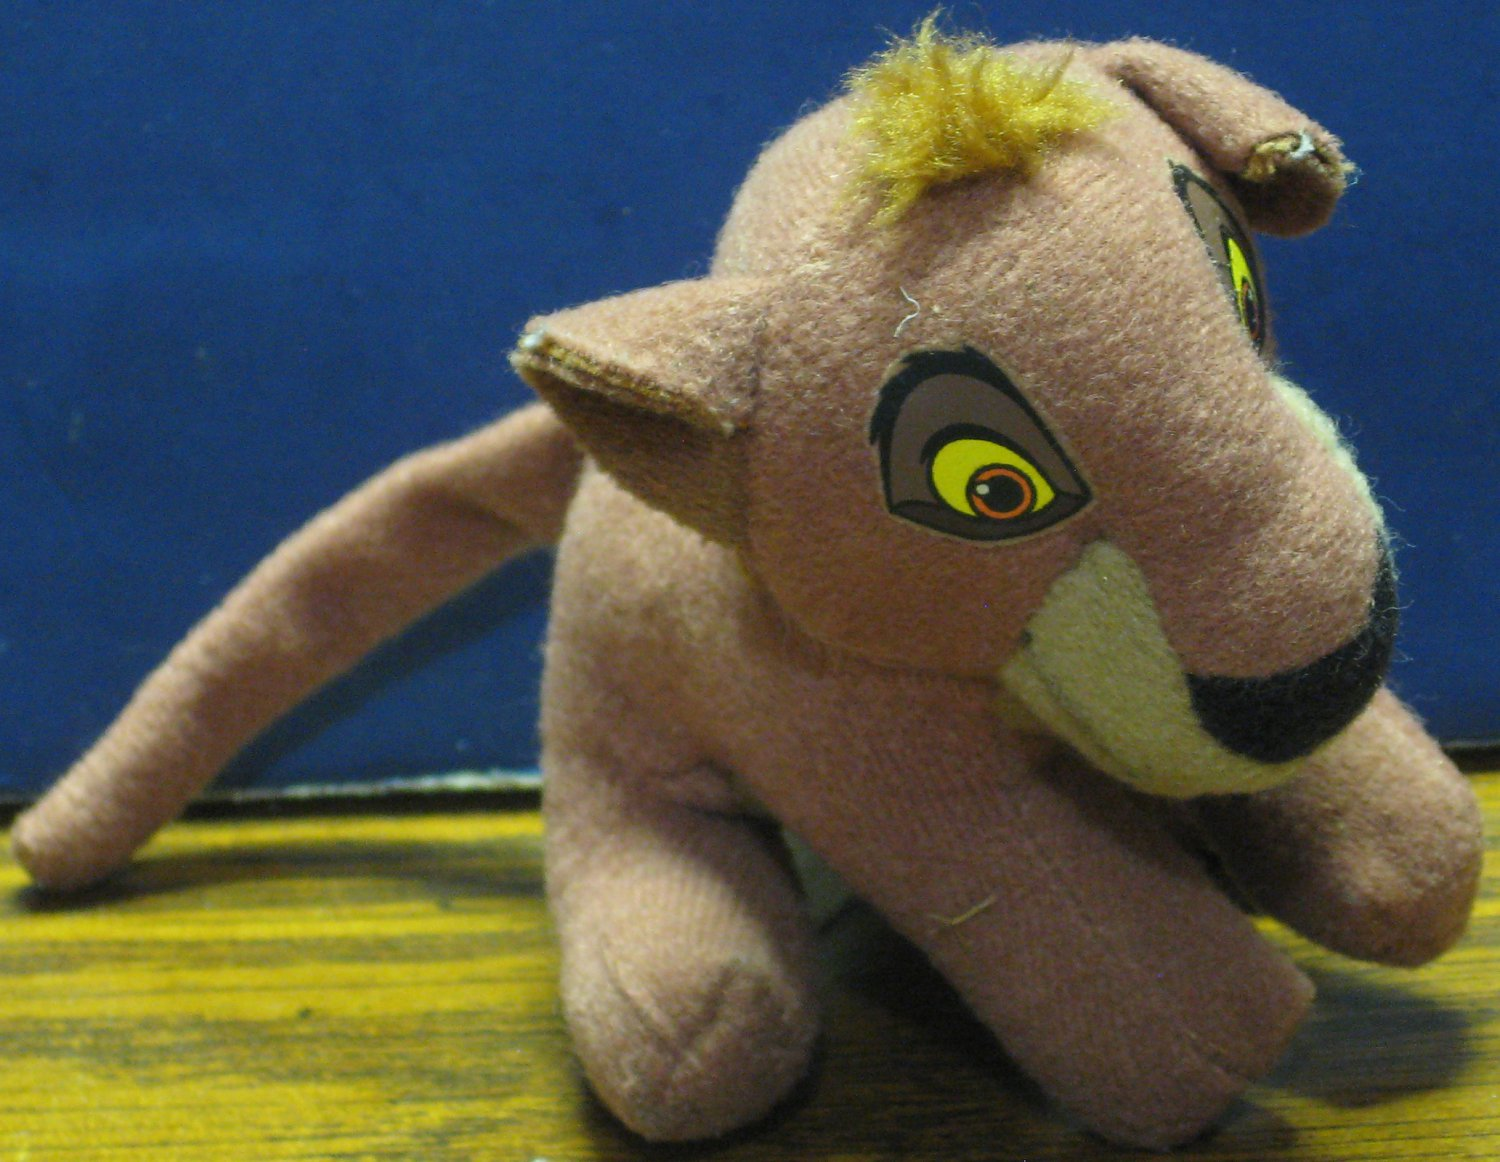 "Disney Lion King II Simba's Pride Kovu Mini Plush - 3"" - McDonalds"